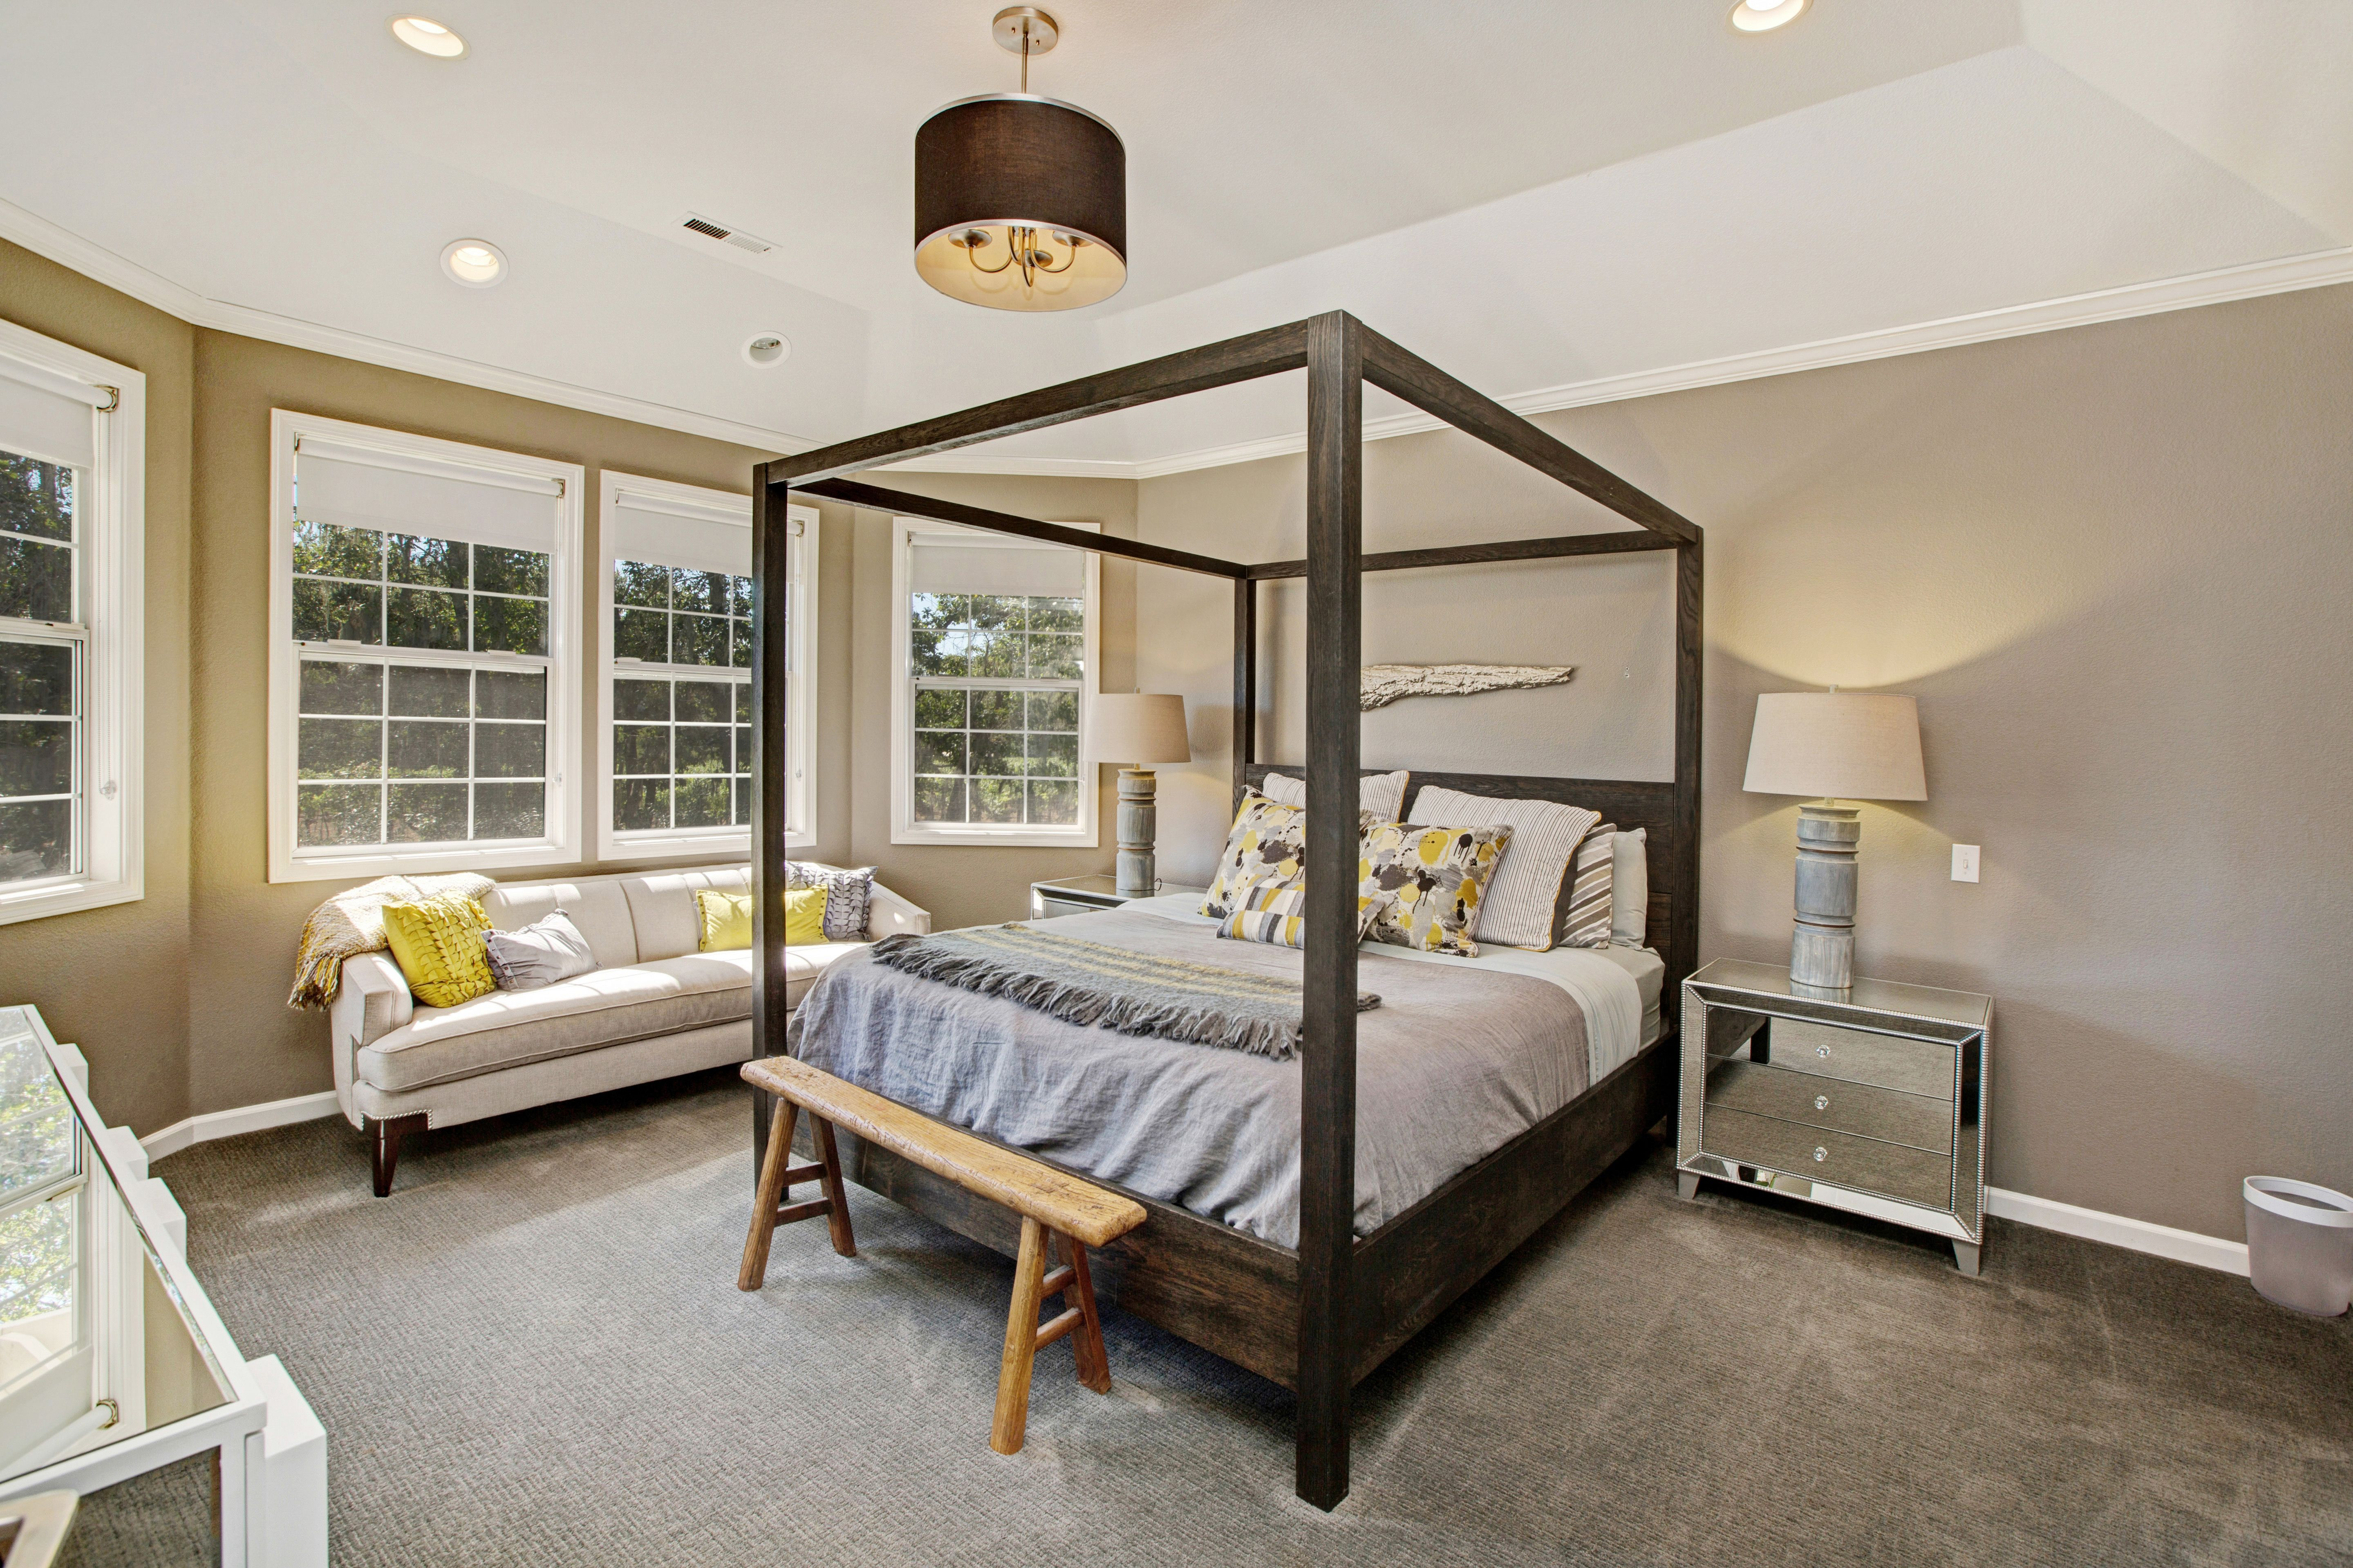 Best Master Bedroom With Canopy King Bed In A Modern Farm House 640 x 480